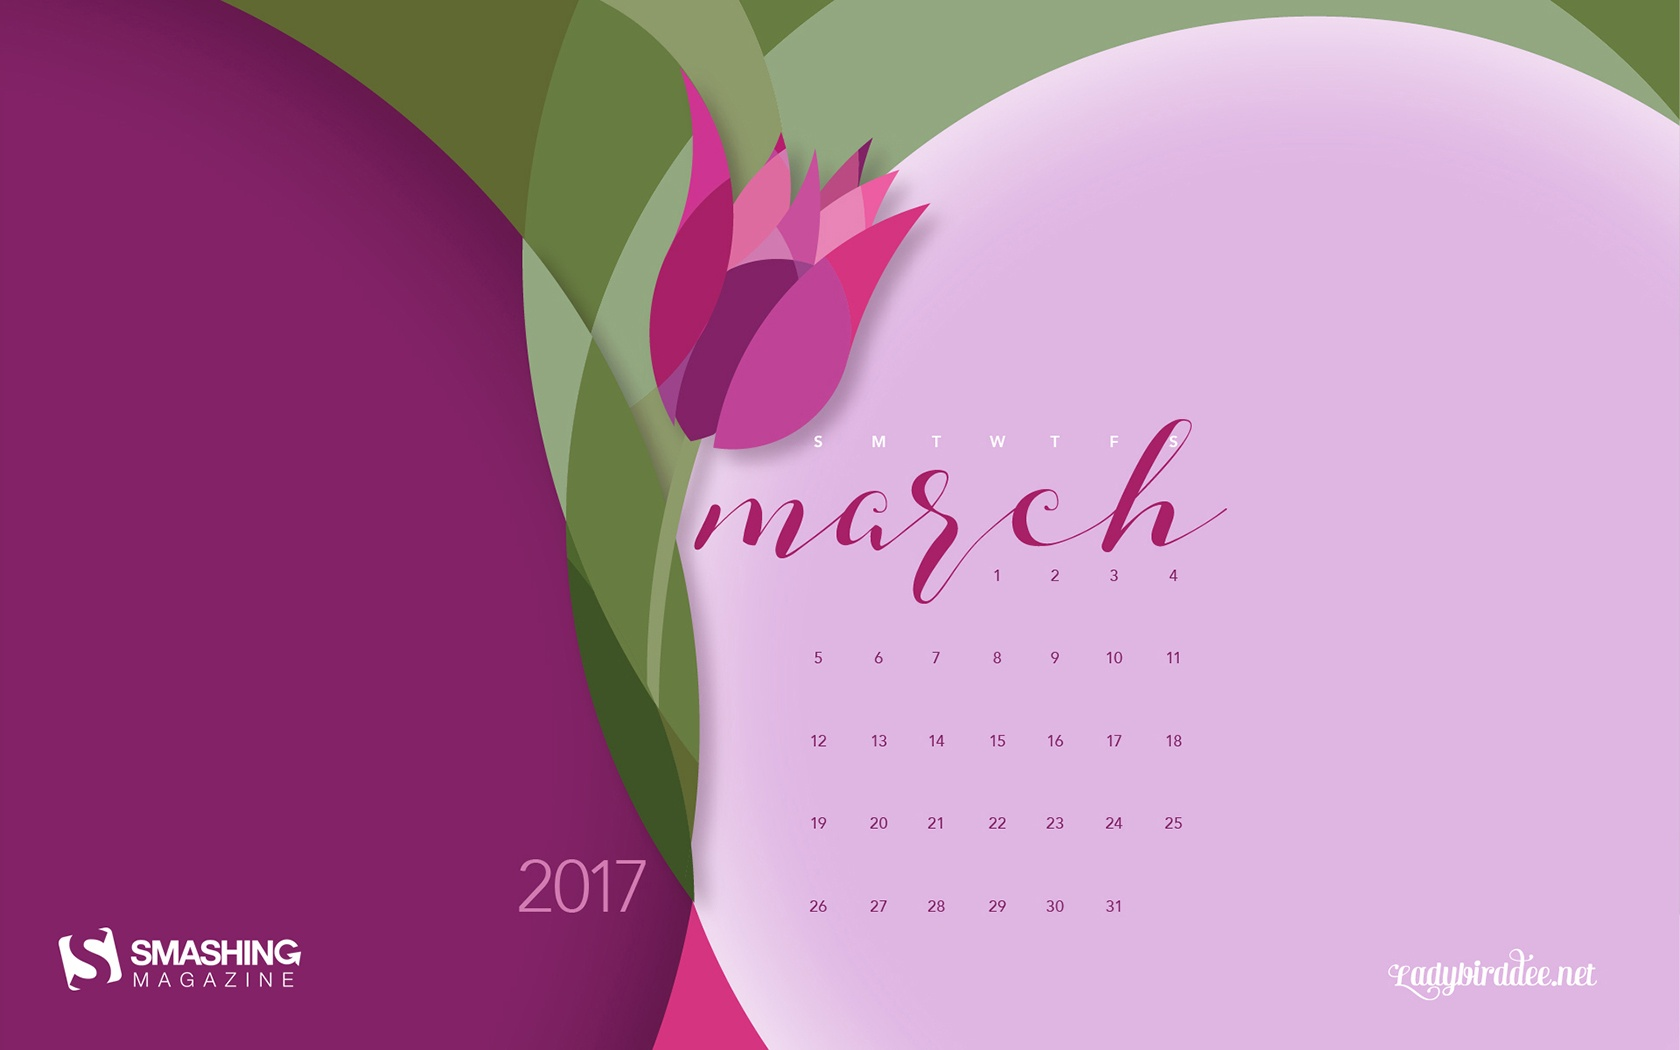 March 2017 Calendar Wallpaper  54042